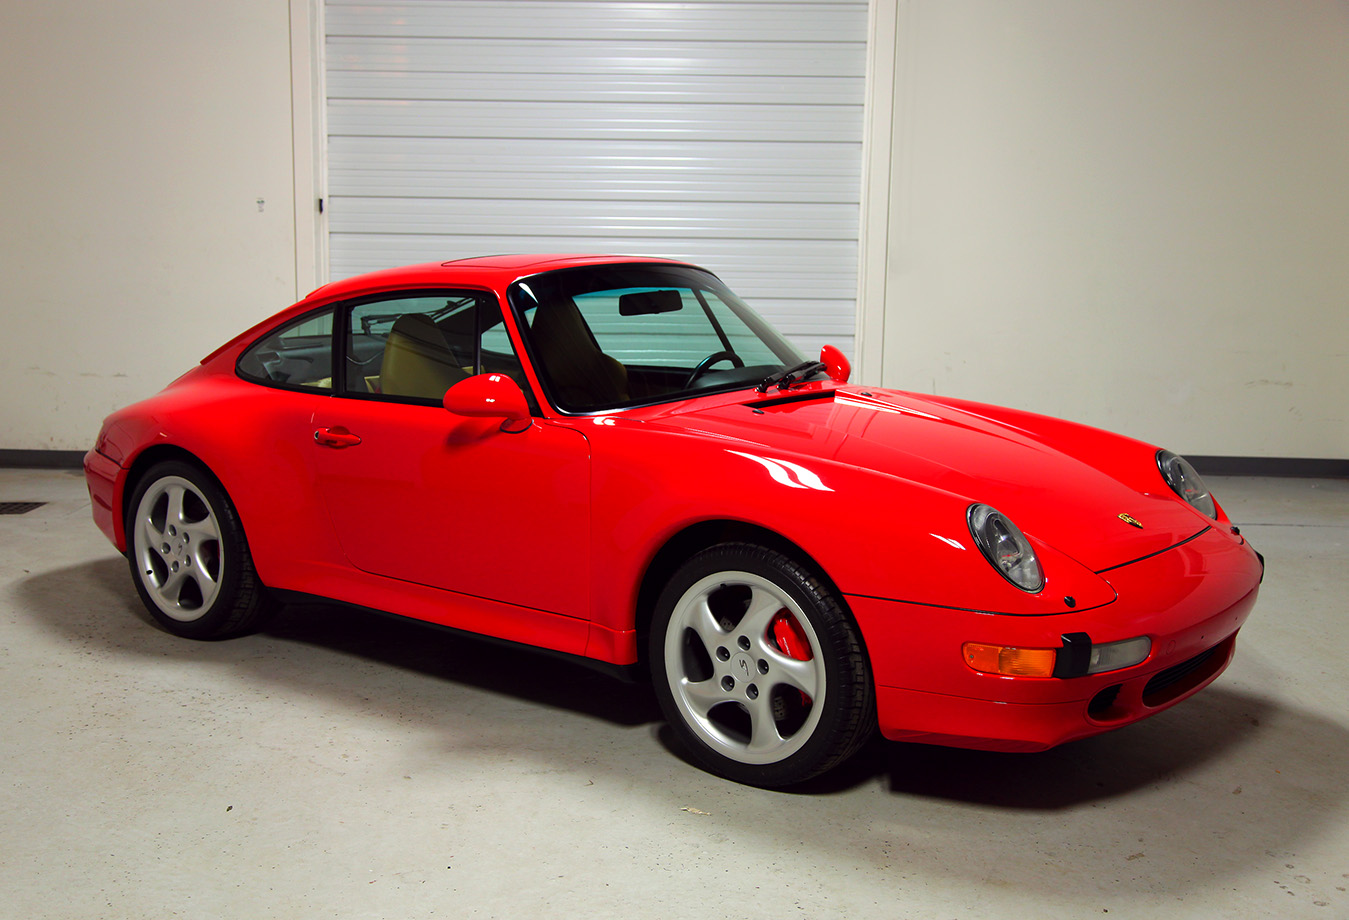 1997 Porsche 993 C4s Guards Red 1 958 Miles Sloan Cars